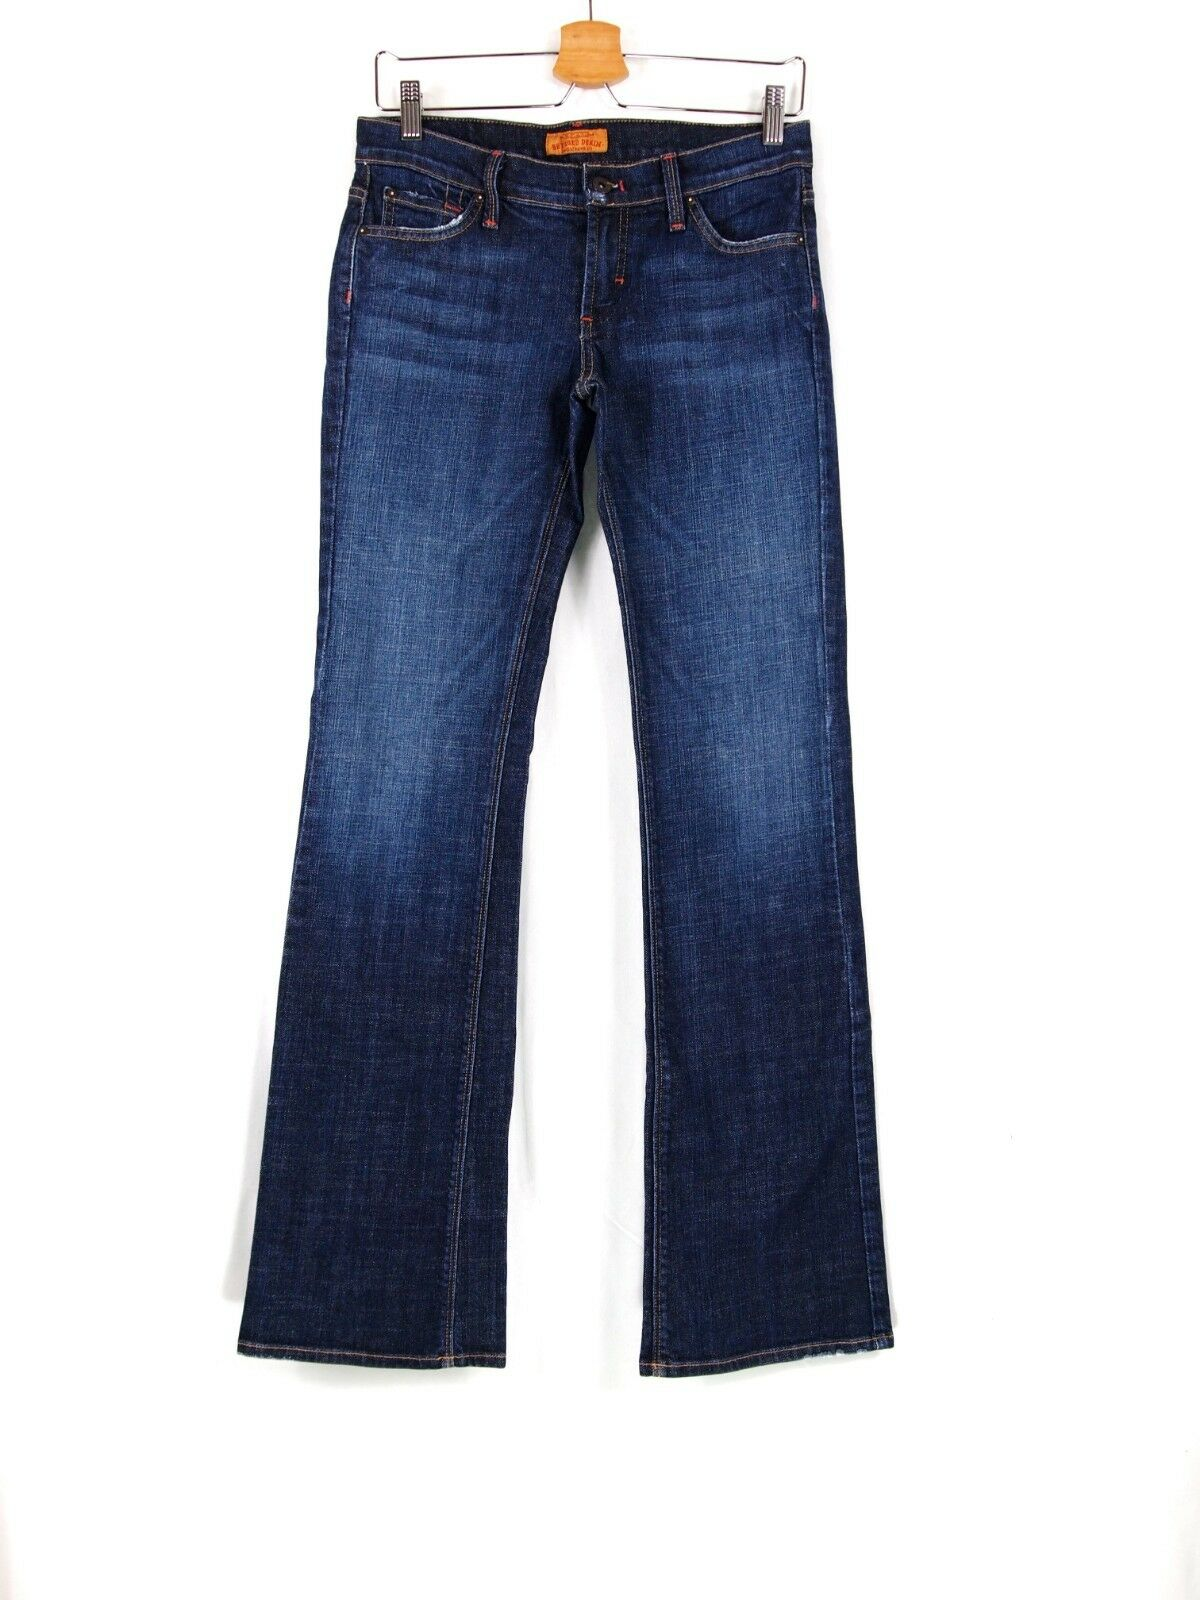 James Jeans Graphite Distressed Bootcut Jeans 28